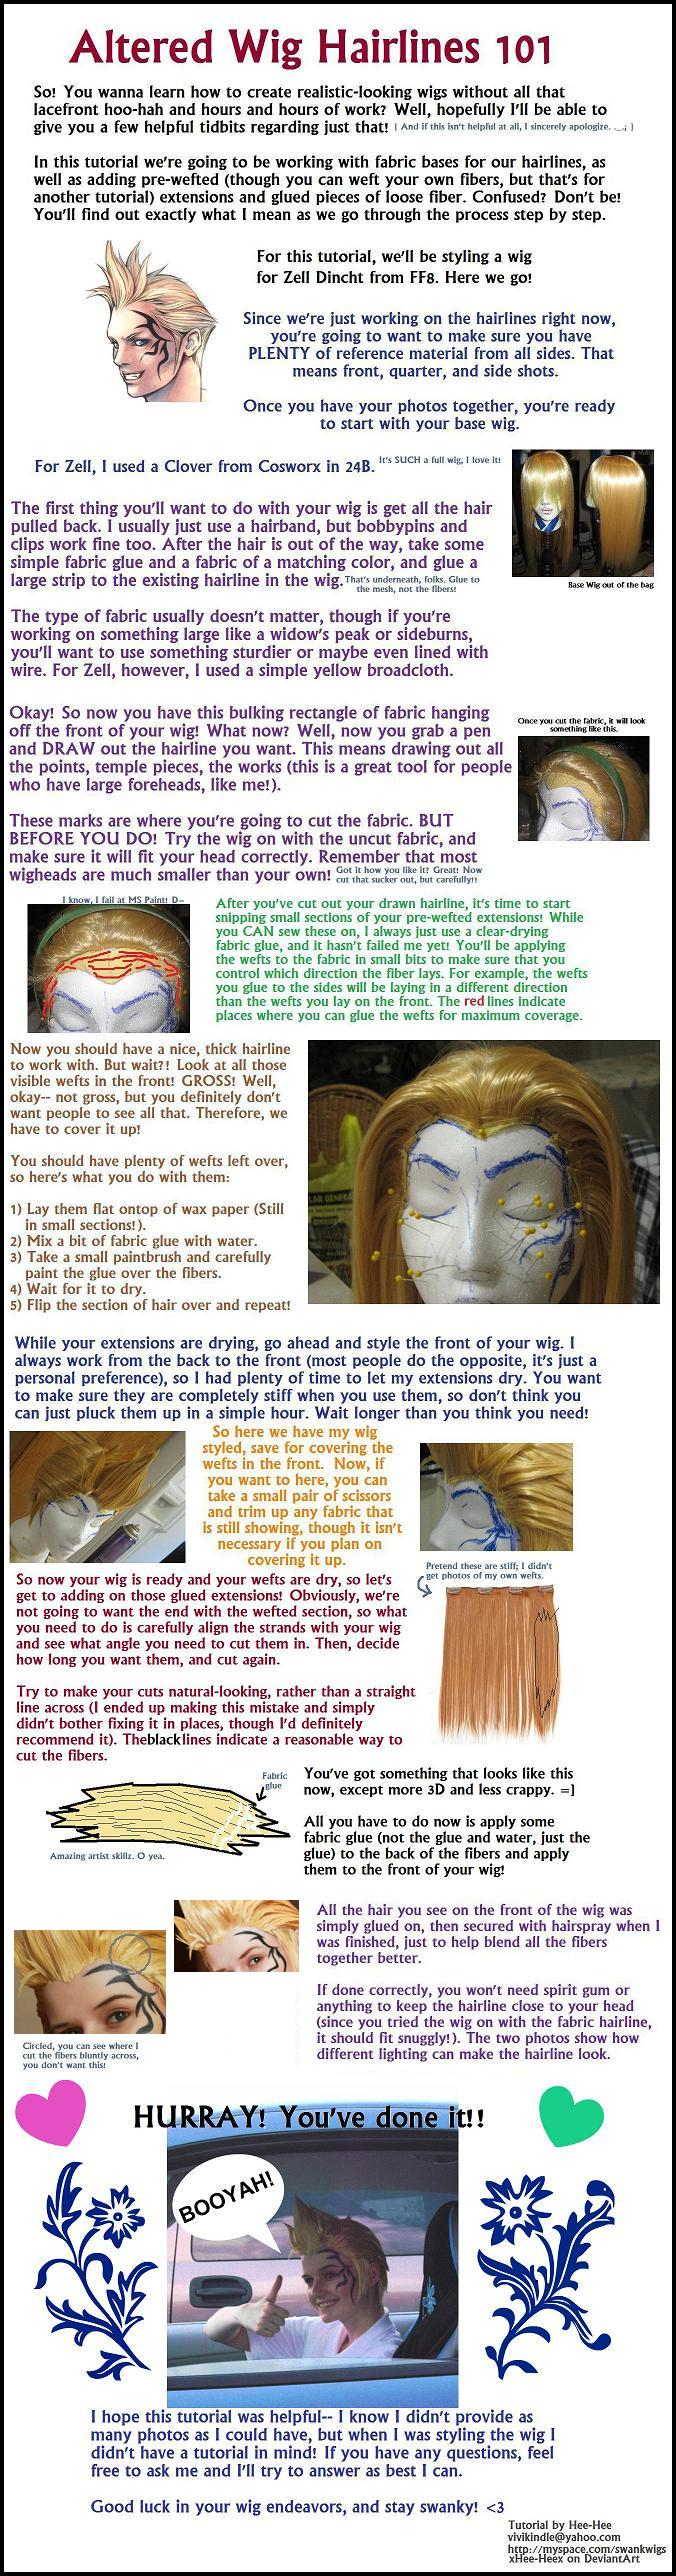 Altered Wig Hairlines